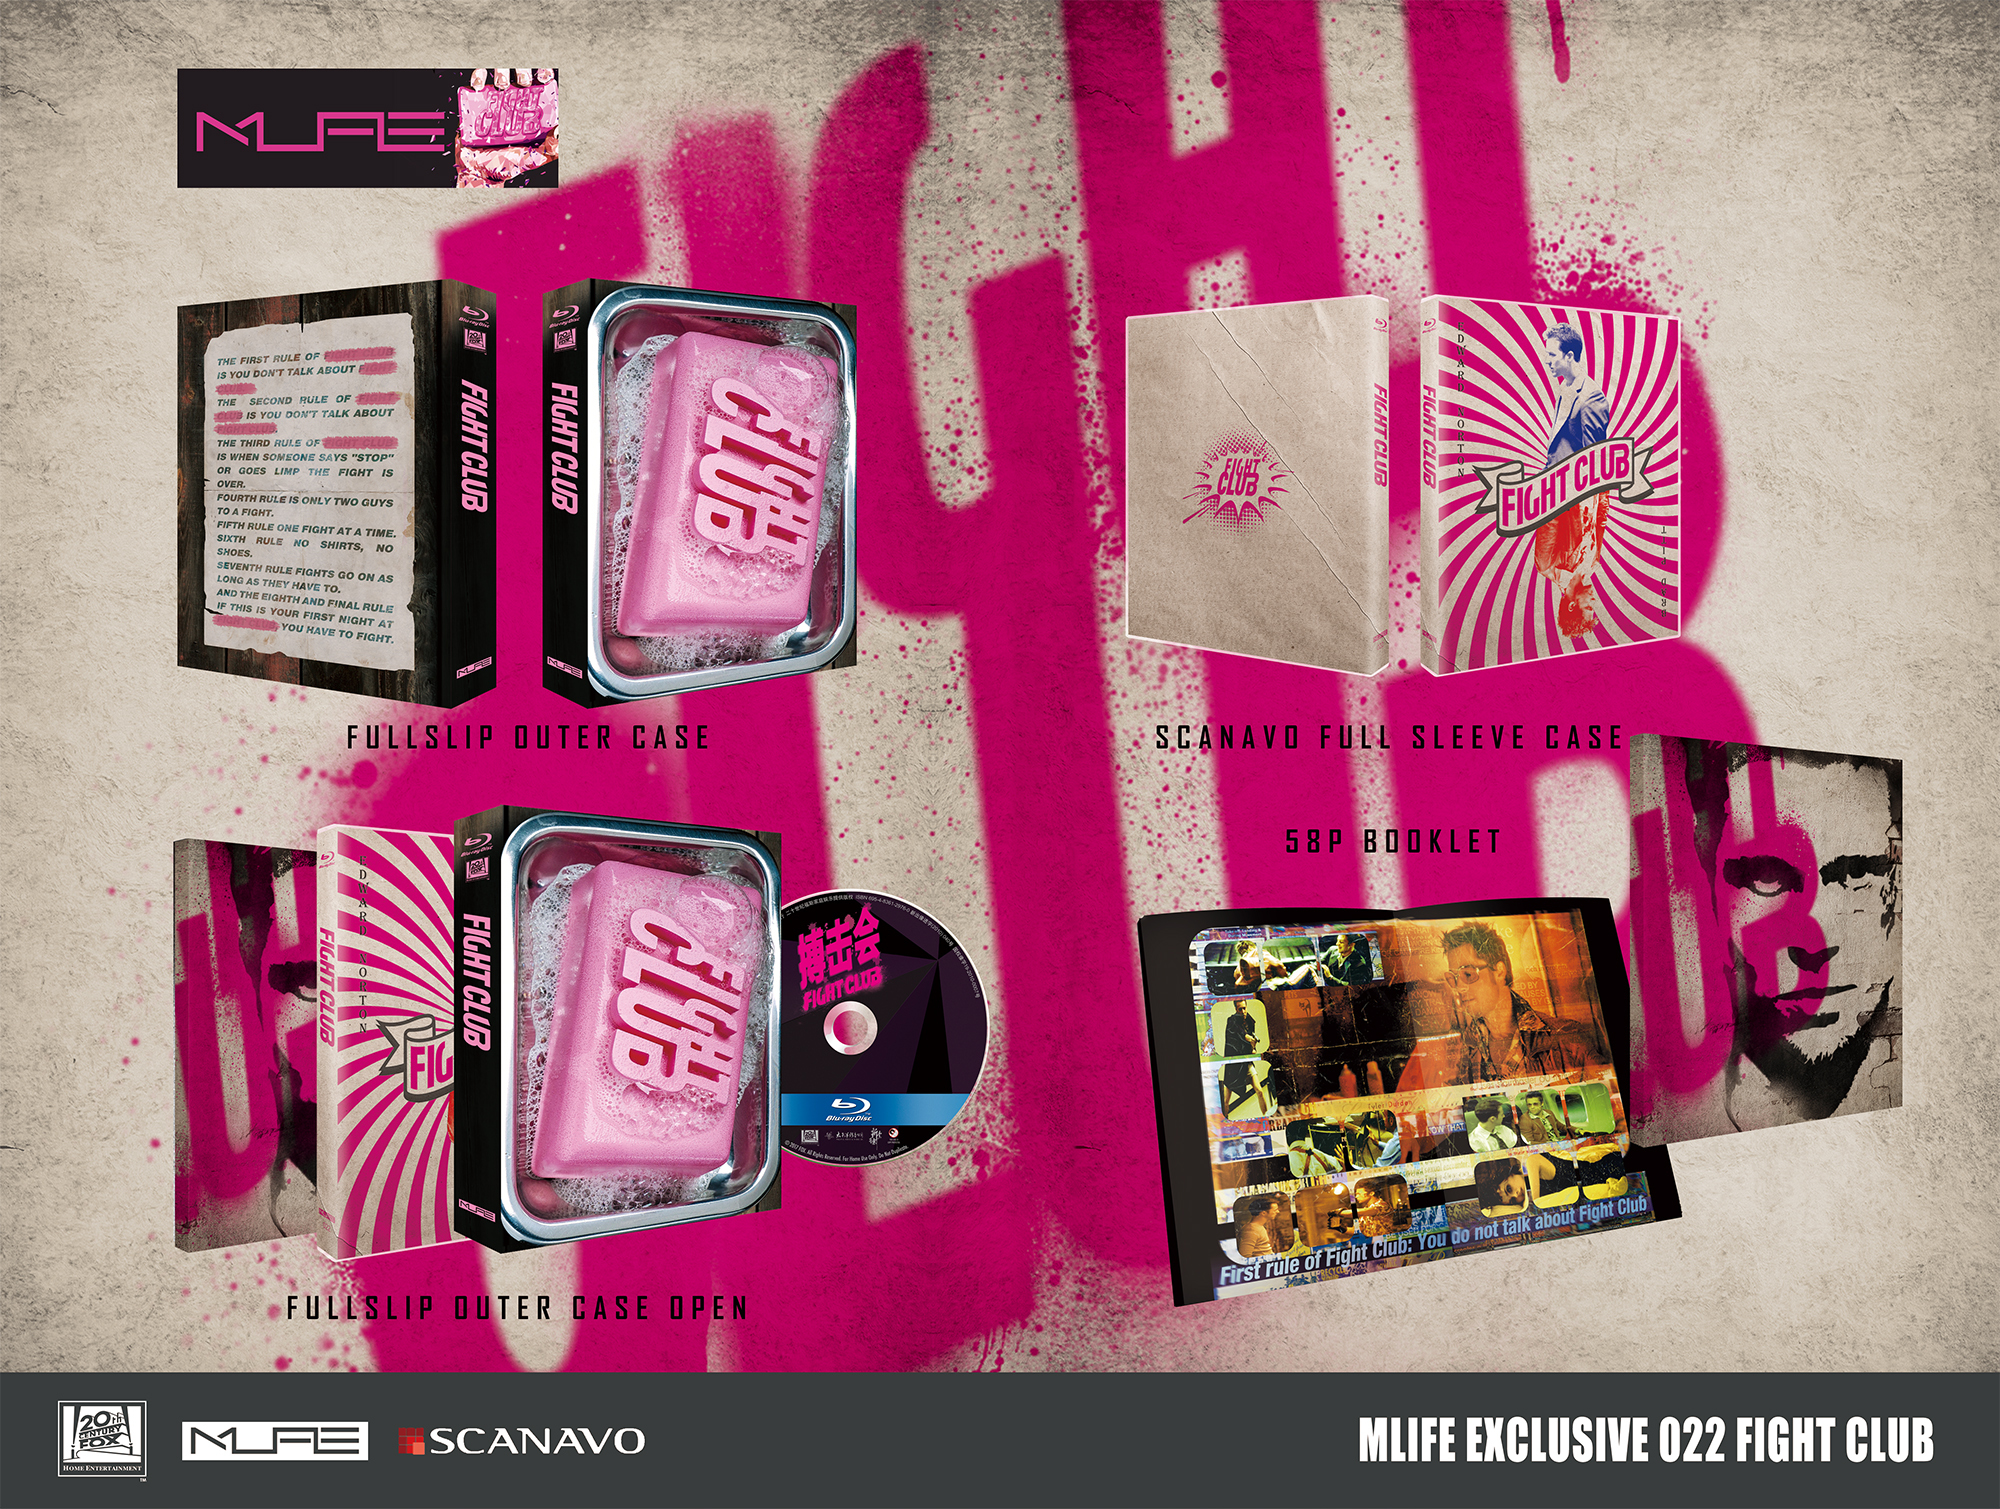 fight club blu ray  Fight Club Blu-ray: MLIFE Exclusive 022 | Limited to 300 Sets | 搏击 ...